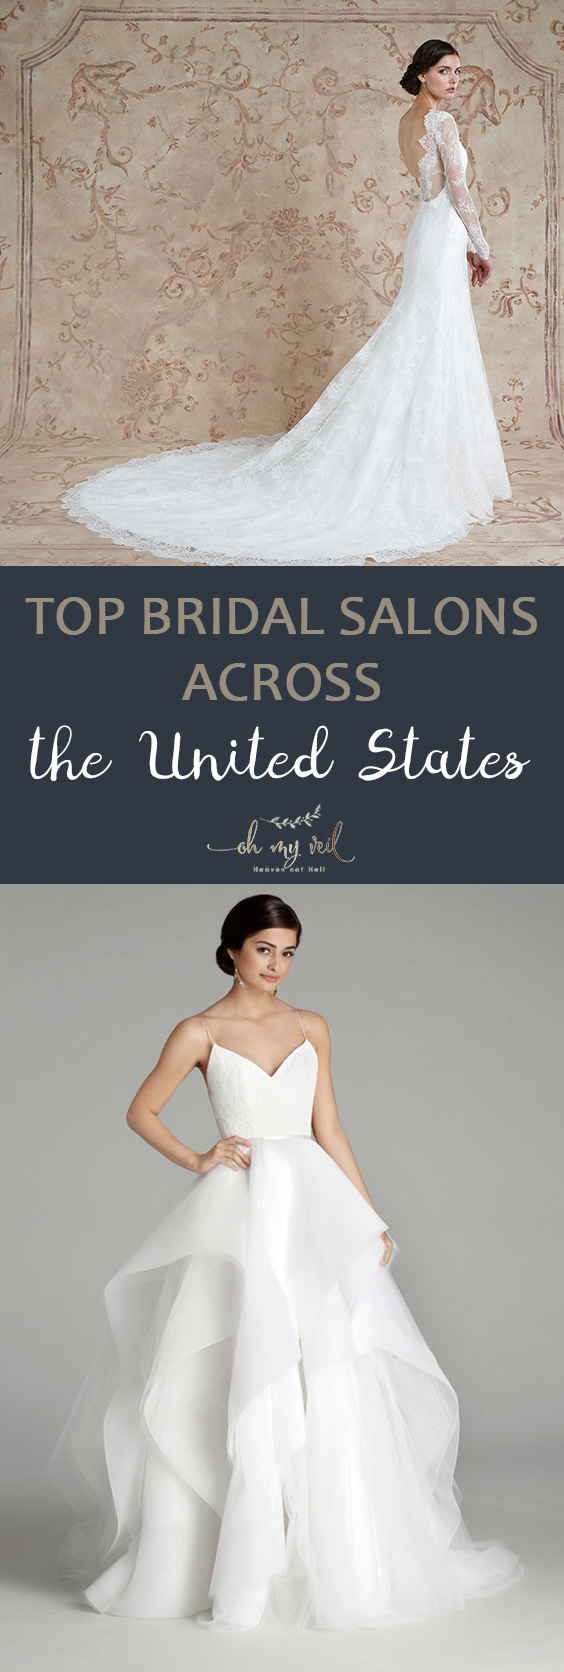 Top Bridal Salons | Bridal Salons Across the United States | Best Bridal Salons | Bridal Salons | Bridal | Wedding Planning